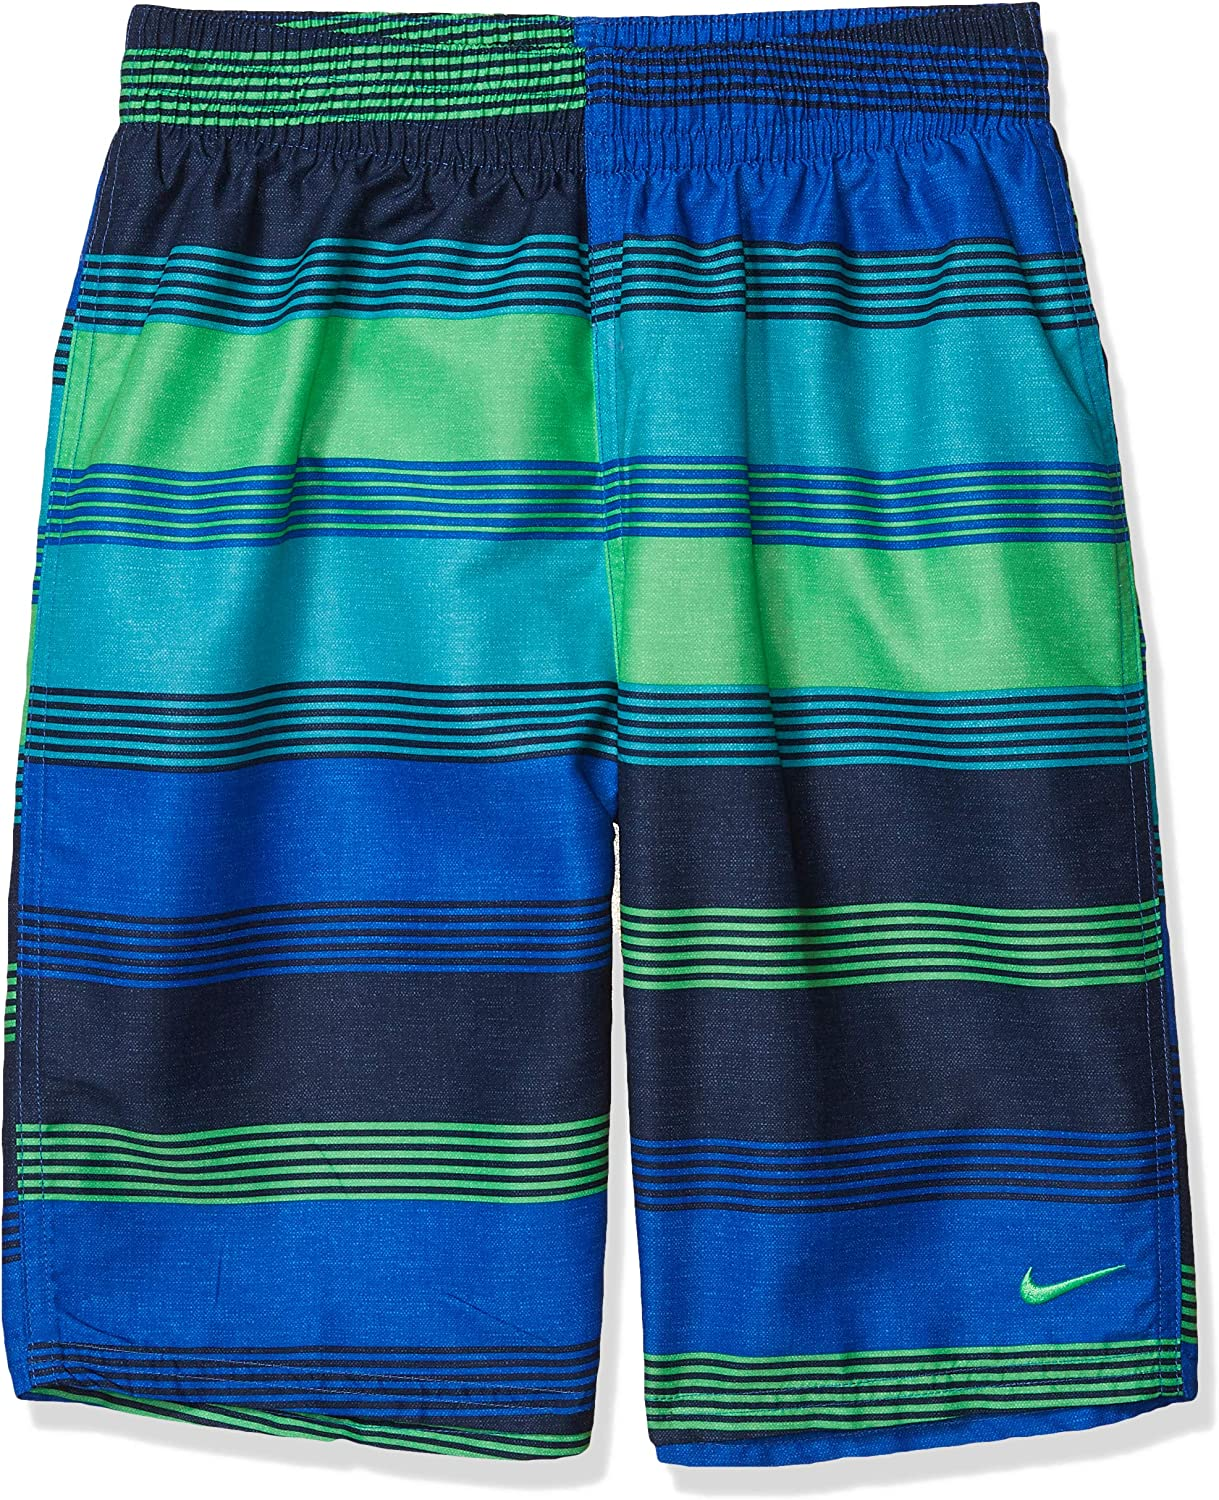 Nike Boy's Printed Volley New mail order Short Big Trunk Little Tampa Mall Kid Swim